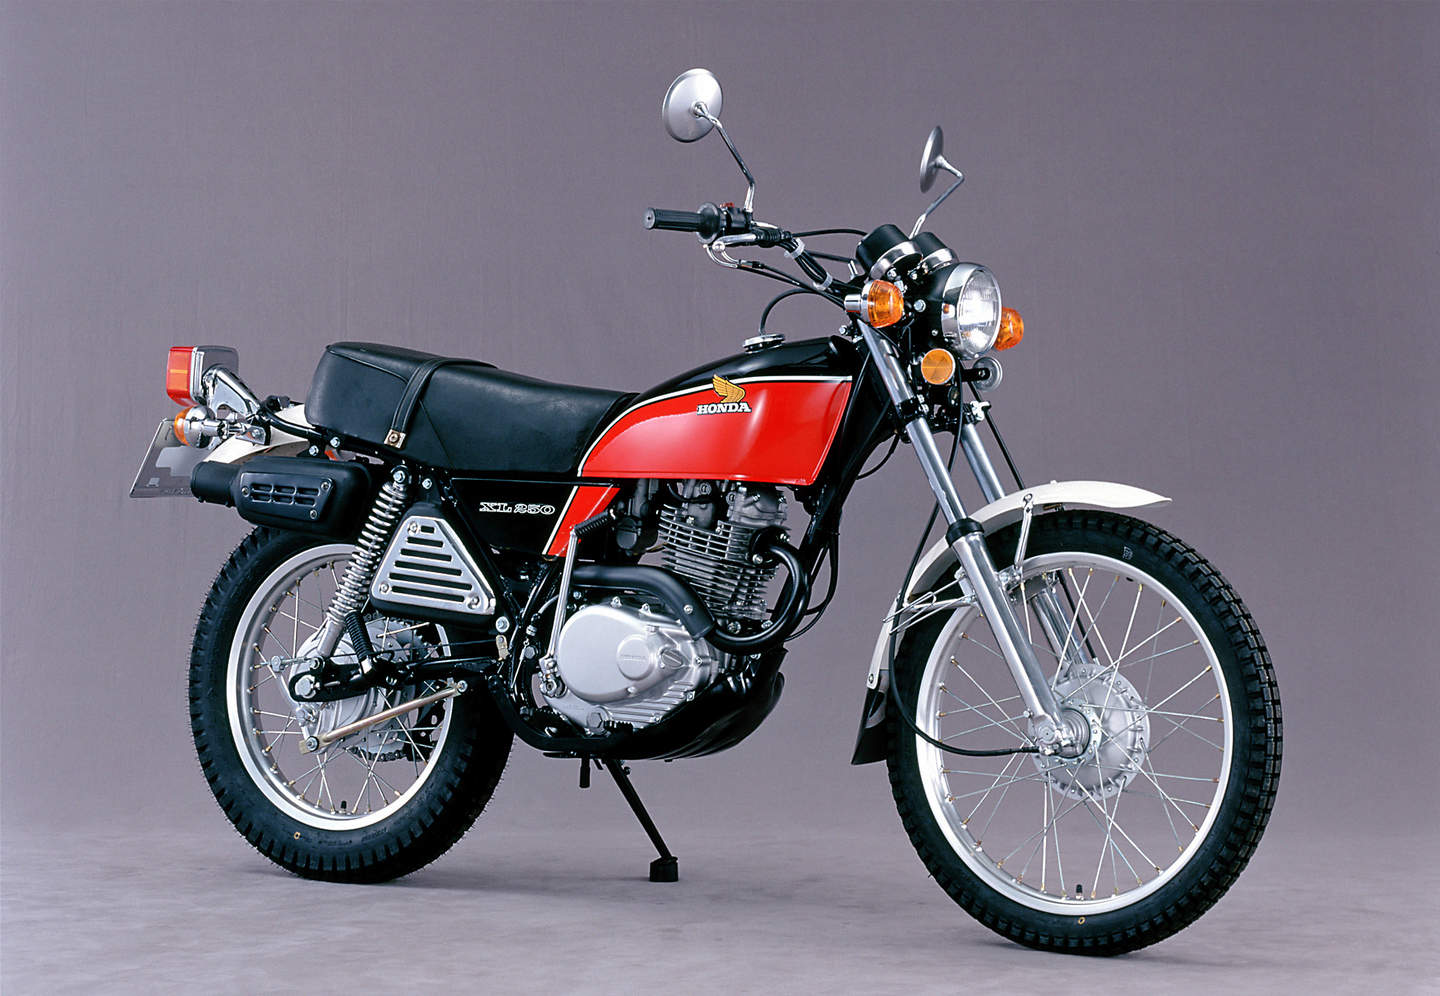 honda xl 125 cafe with Honda Sl 250s Xl 250s on Motos Scrambler likewise Honda Cb 350 Four besides Honda Dream 50 2 moreover Watch as well Honda Sl 250s Xl 250s.